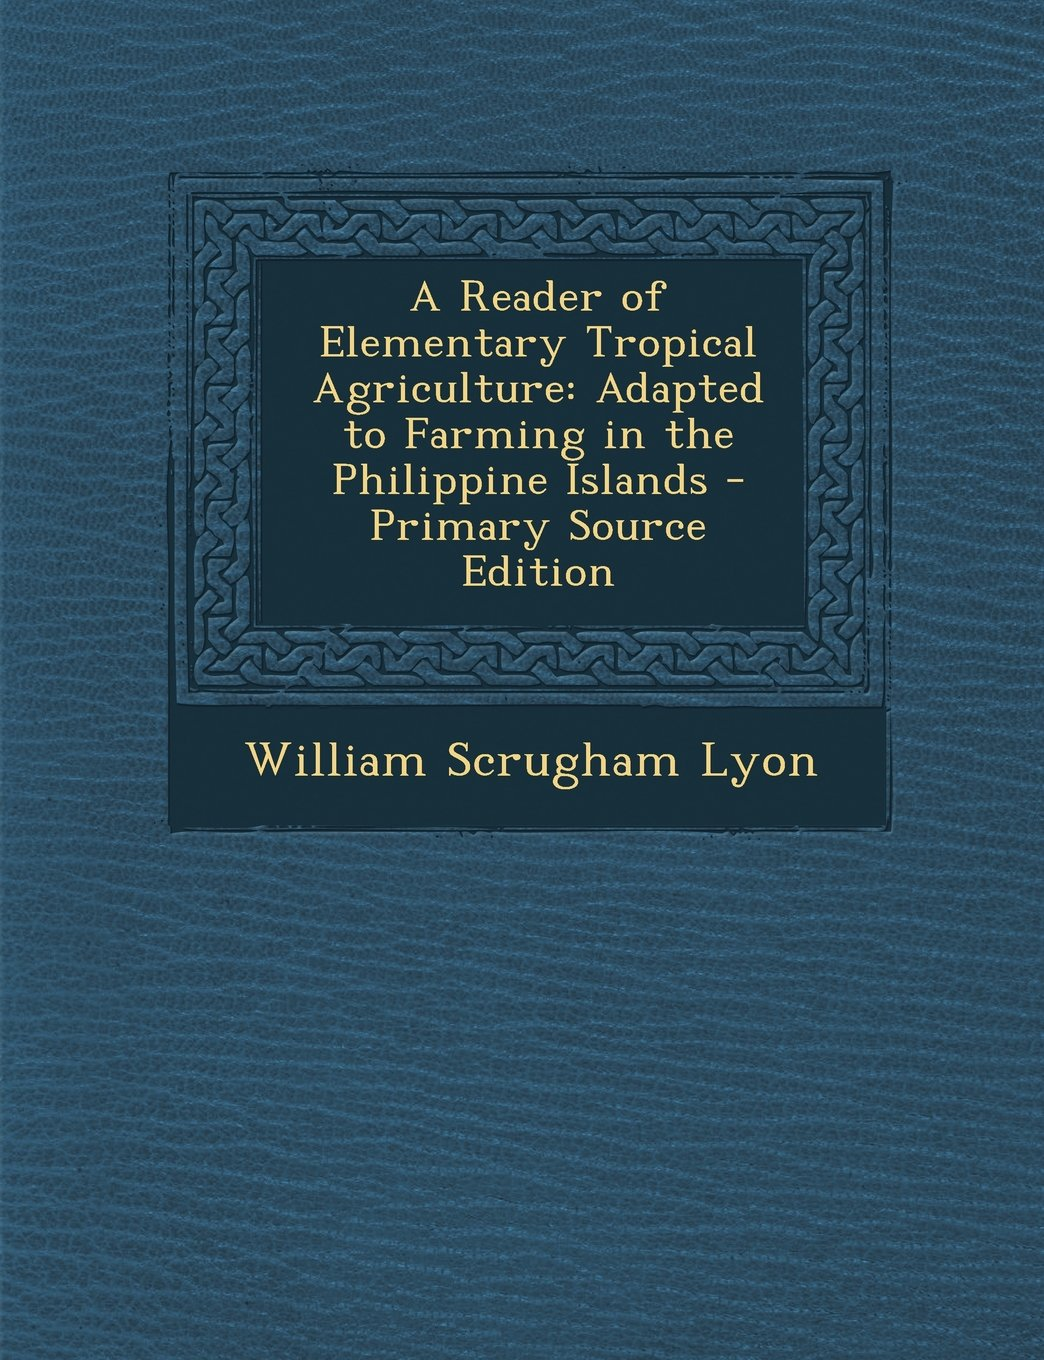 A Reader of Elementary Tropical Agriculture: Adapted to Farming in the Philippine Islands - Primary Source Edition